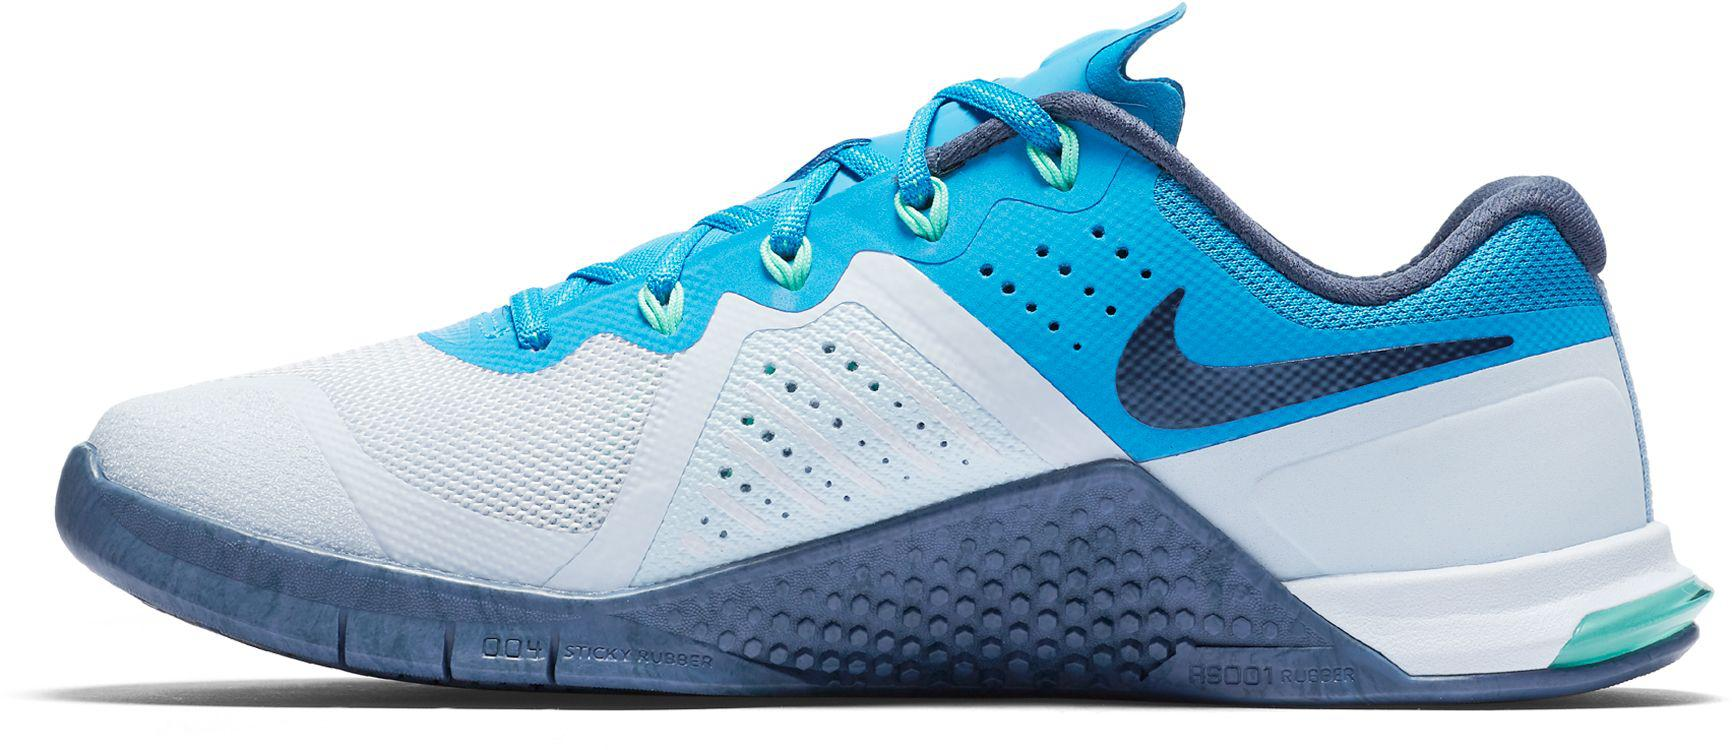 7078b02c6d5892 Lyst - Nike Metcon 2 Training Shoes in Blue for Men